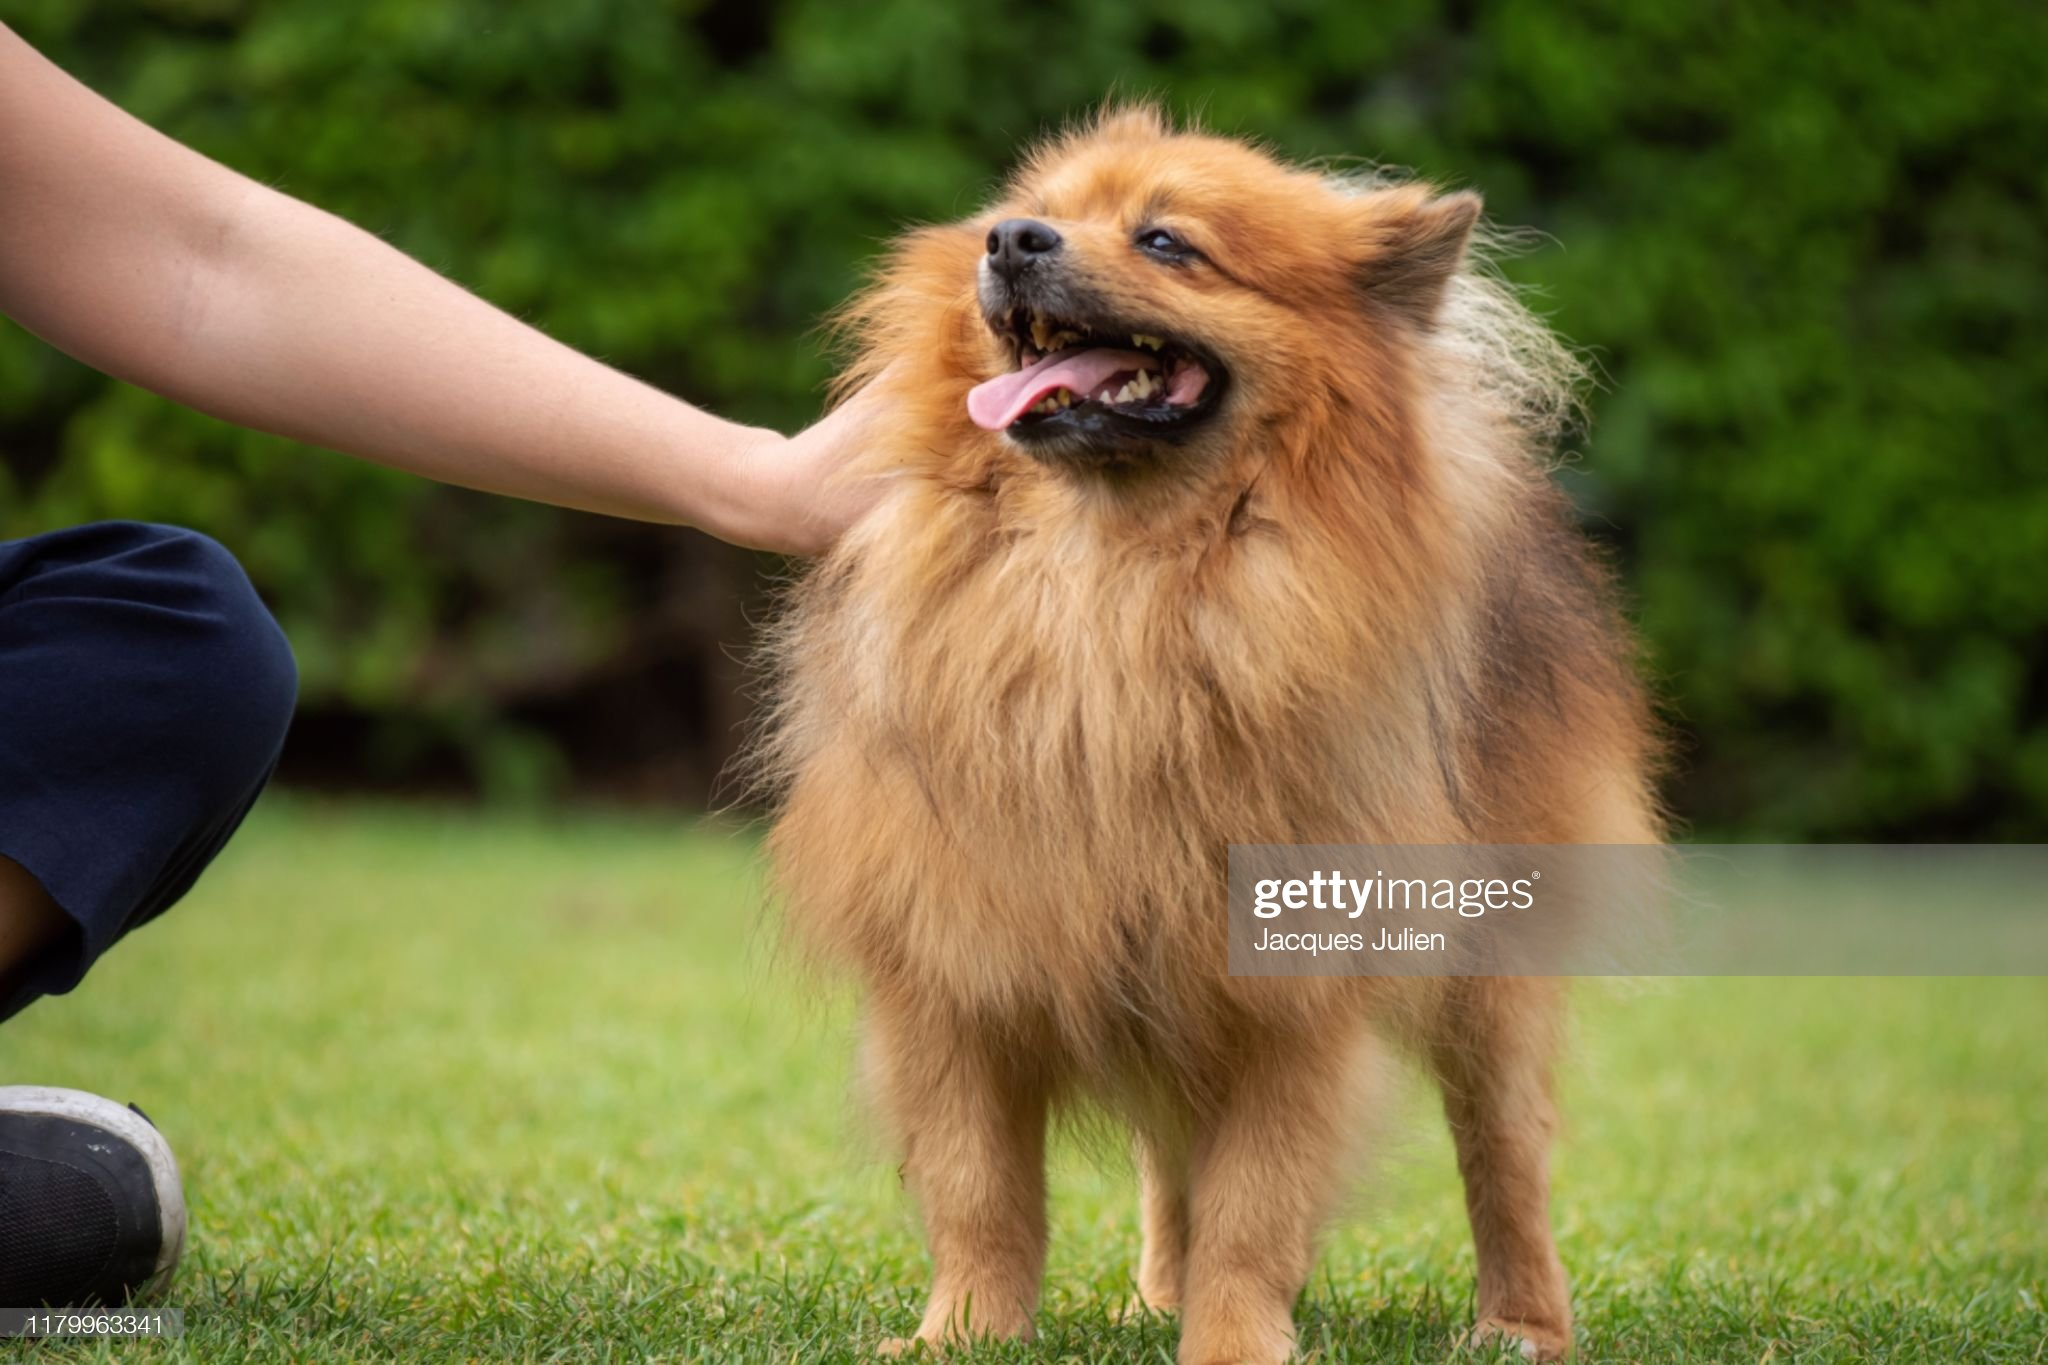 Moment of complicity and love between a spitz dog and his master : Photo